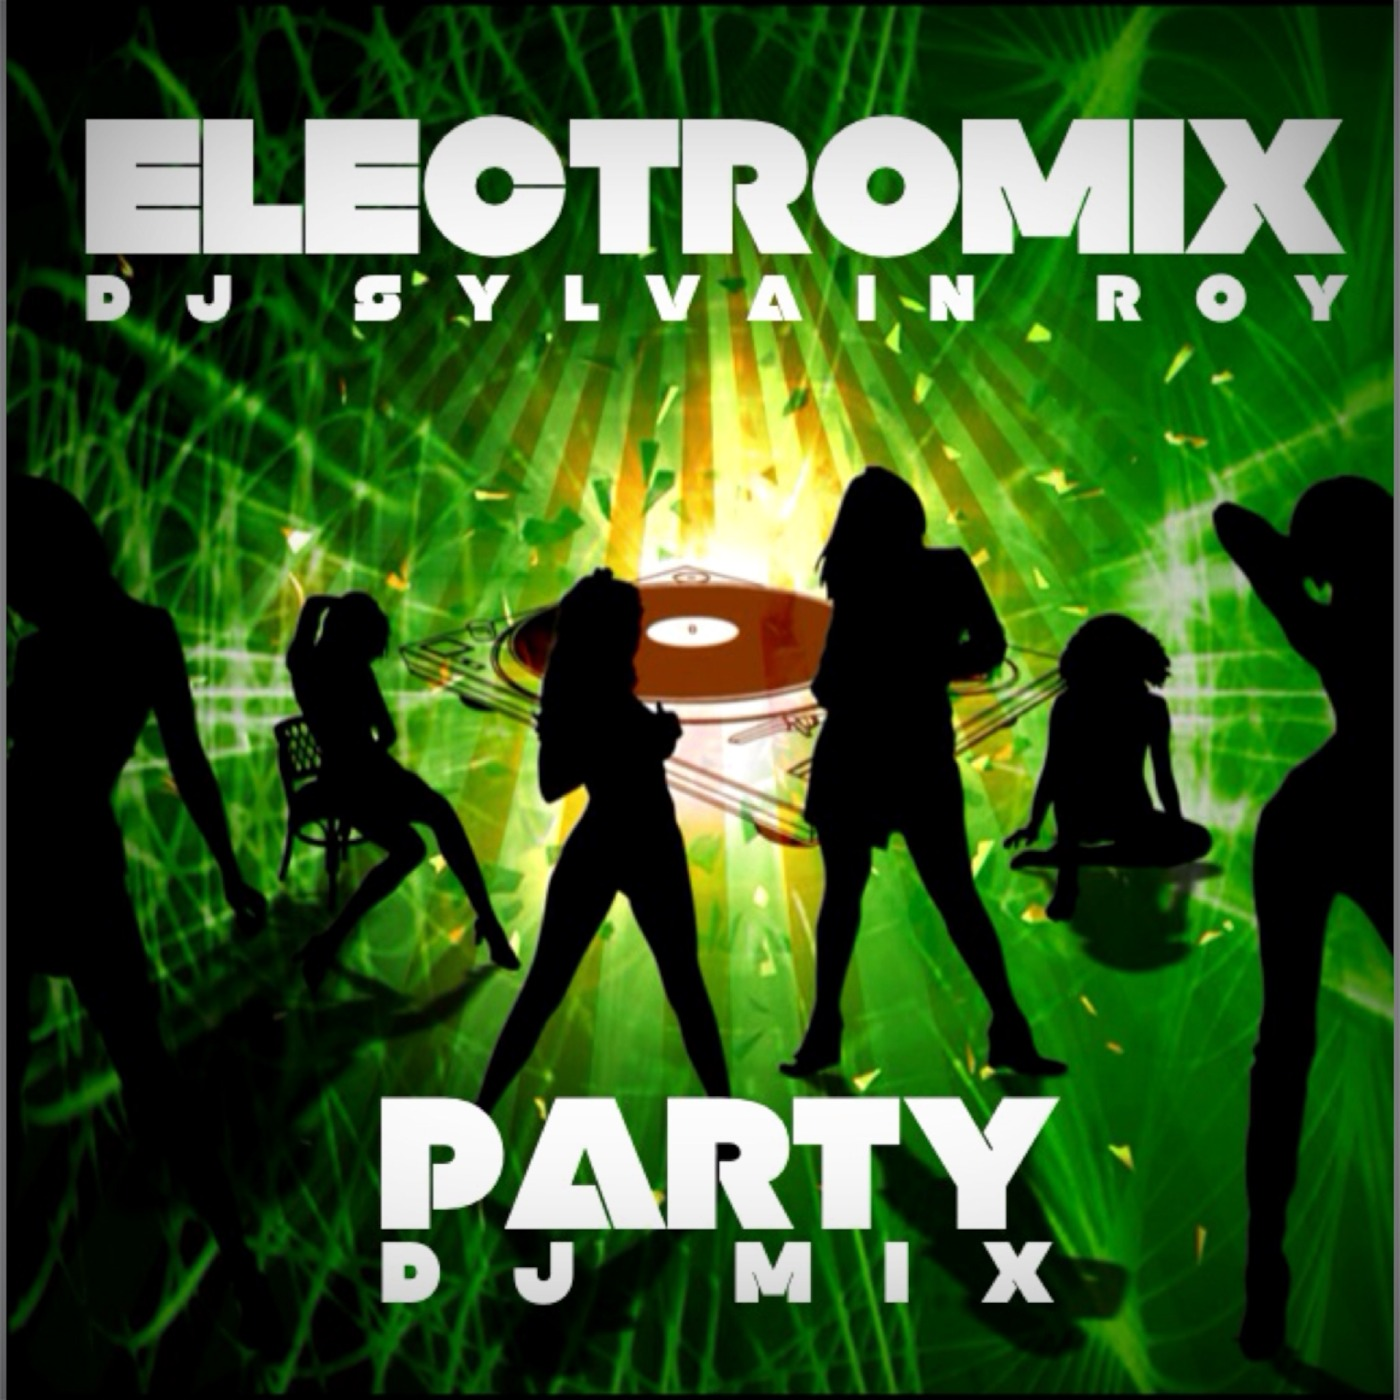 Electromix Party Mix